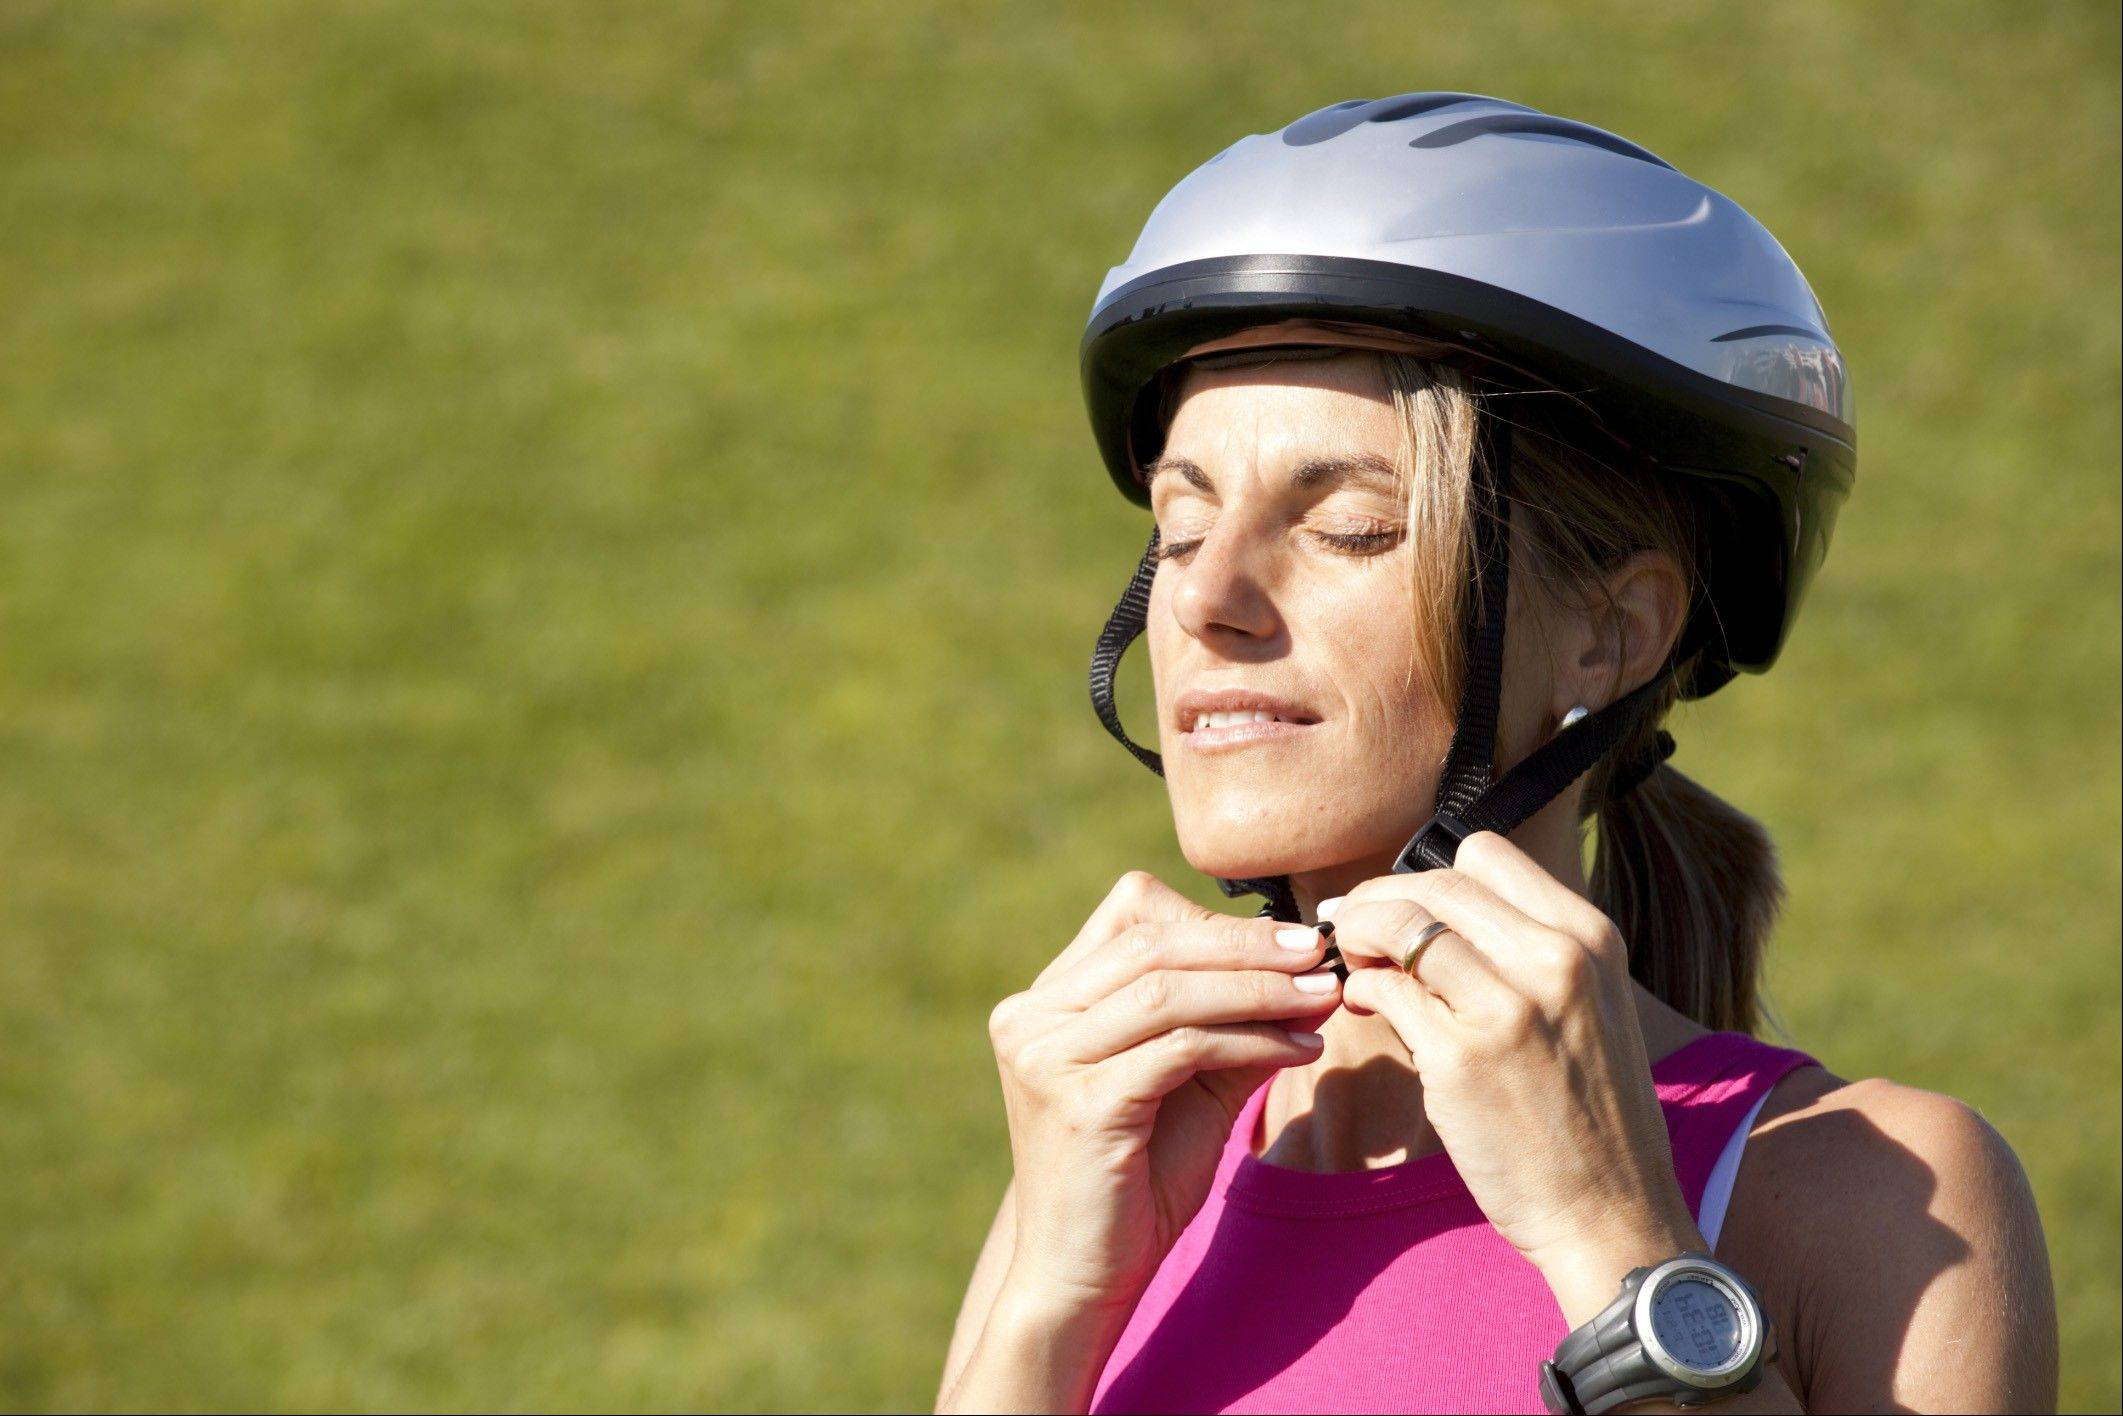 Wearing a bike helmet may help keep you safer in case of a crash or a tumble.